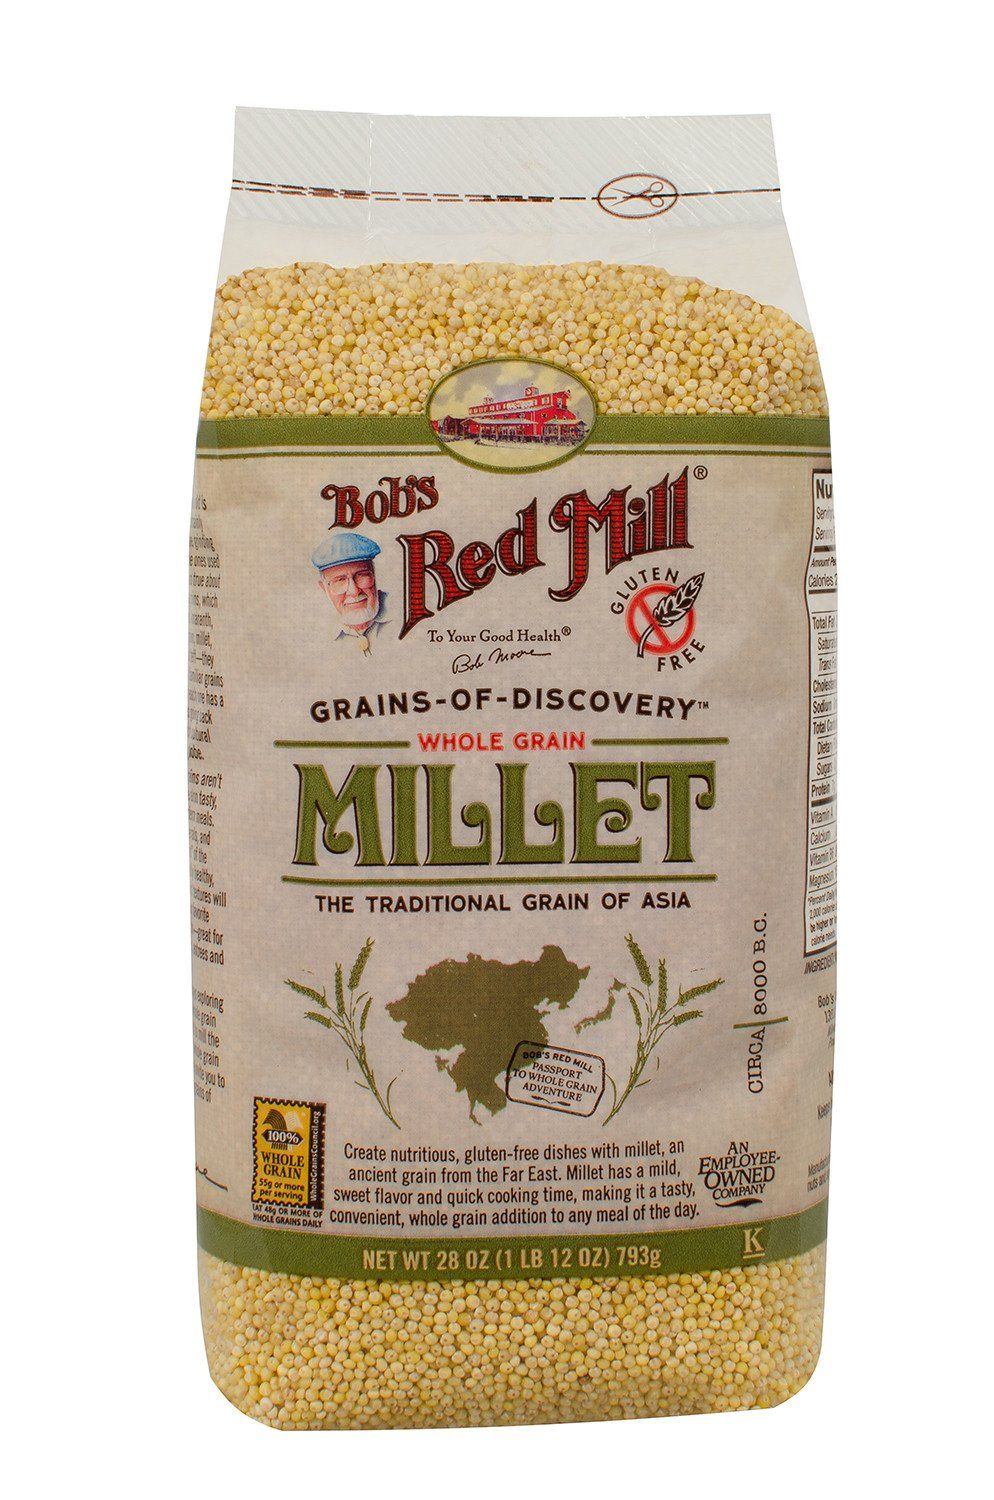 Food & Drink - Bob's Red Mill - Hulled Millet, 793g